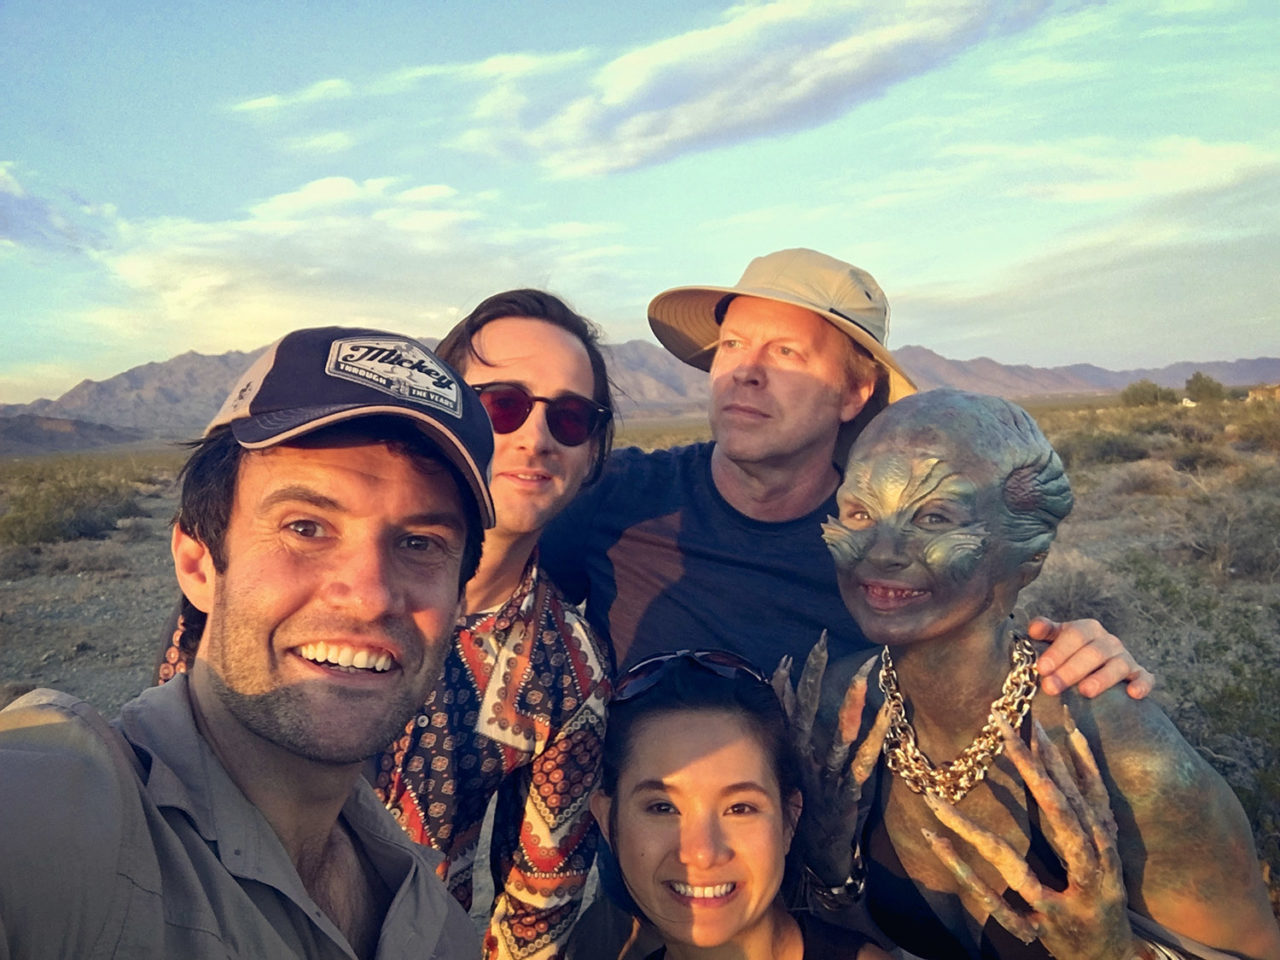 A behind the scenes photo of the film crew for the comedy, Nowhere in the Universe.